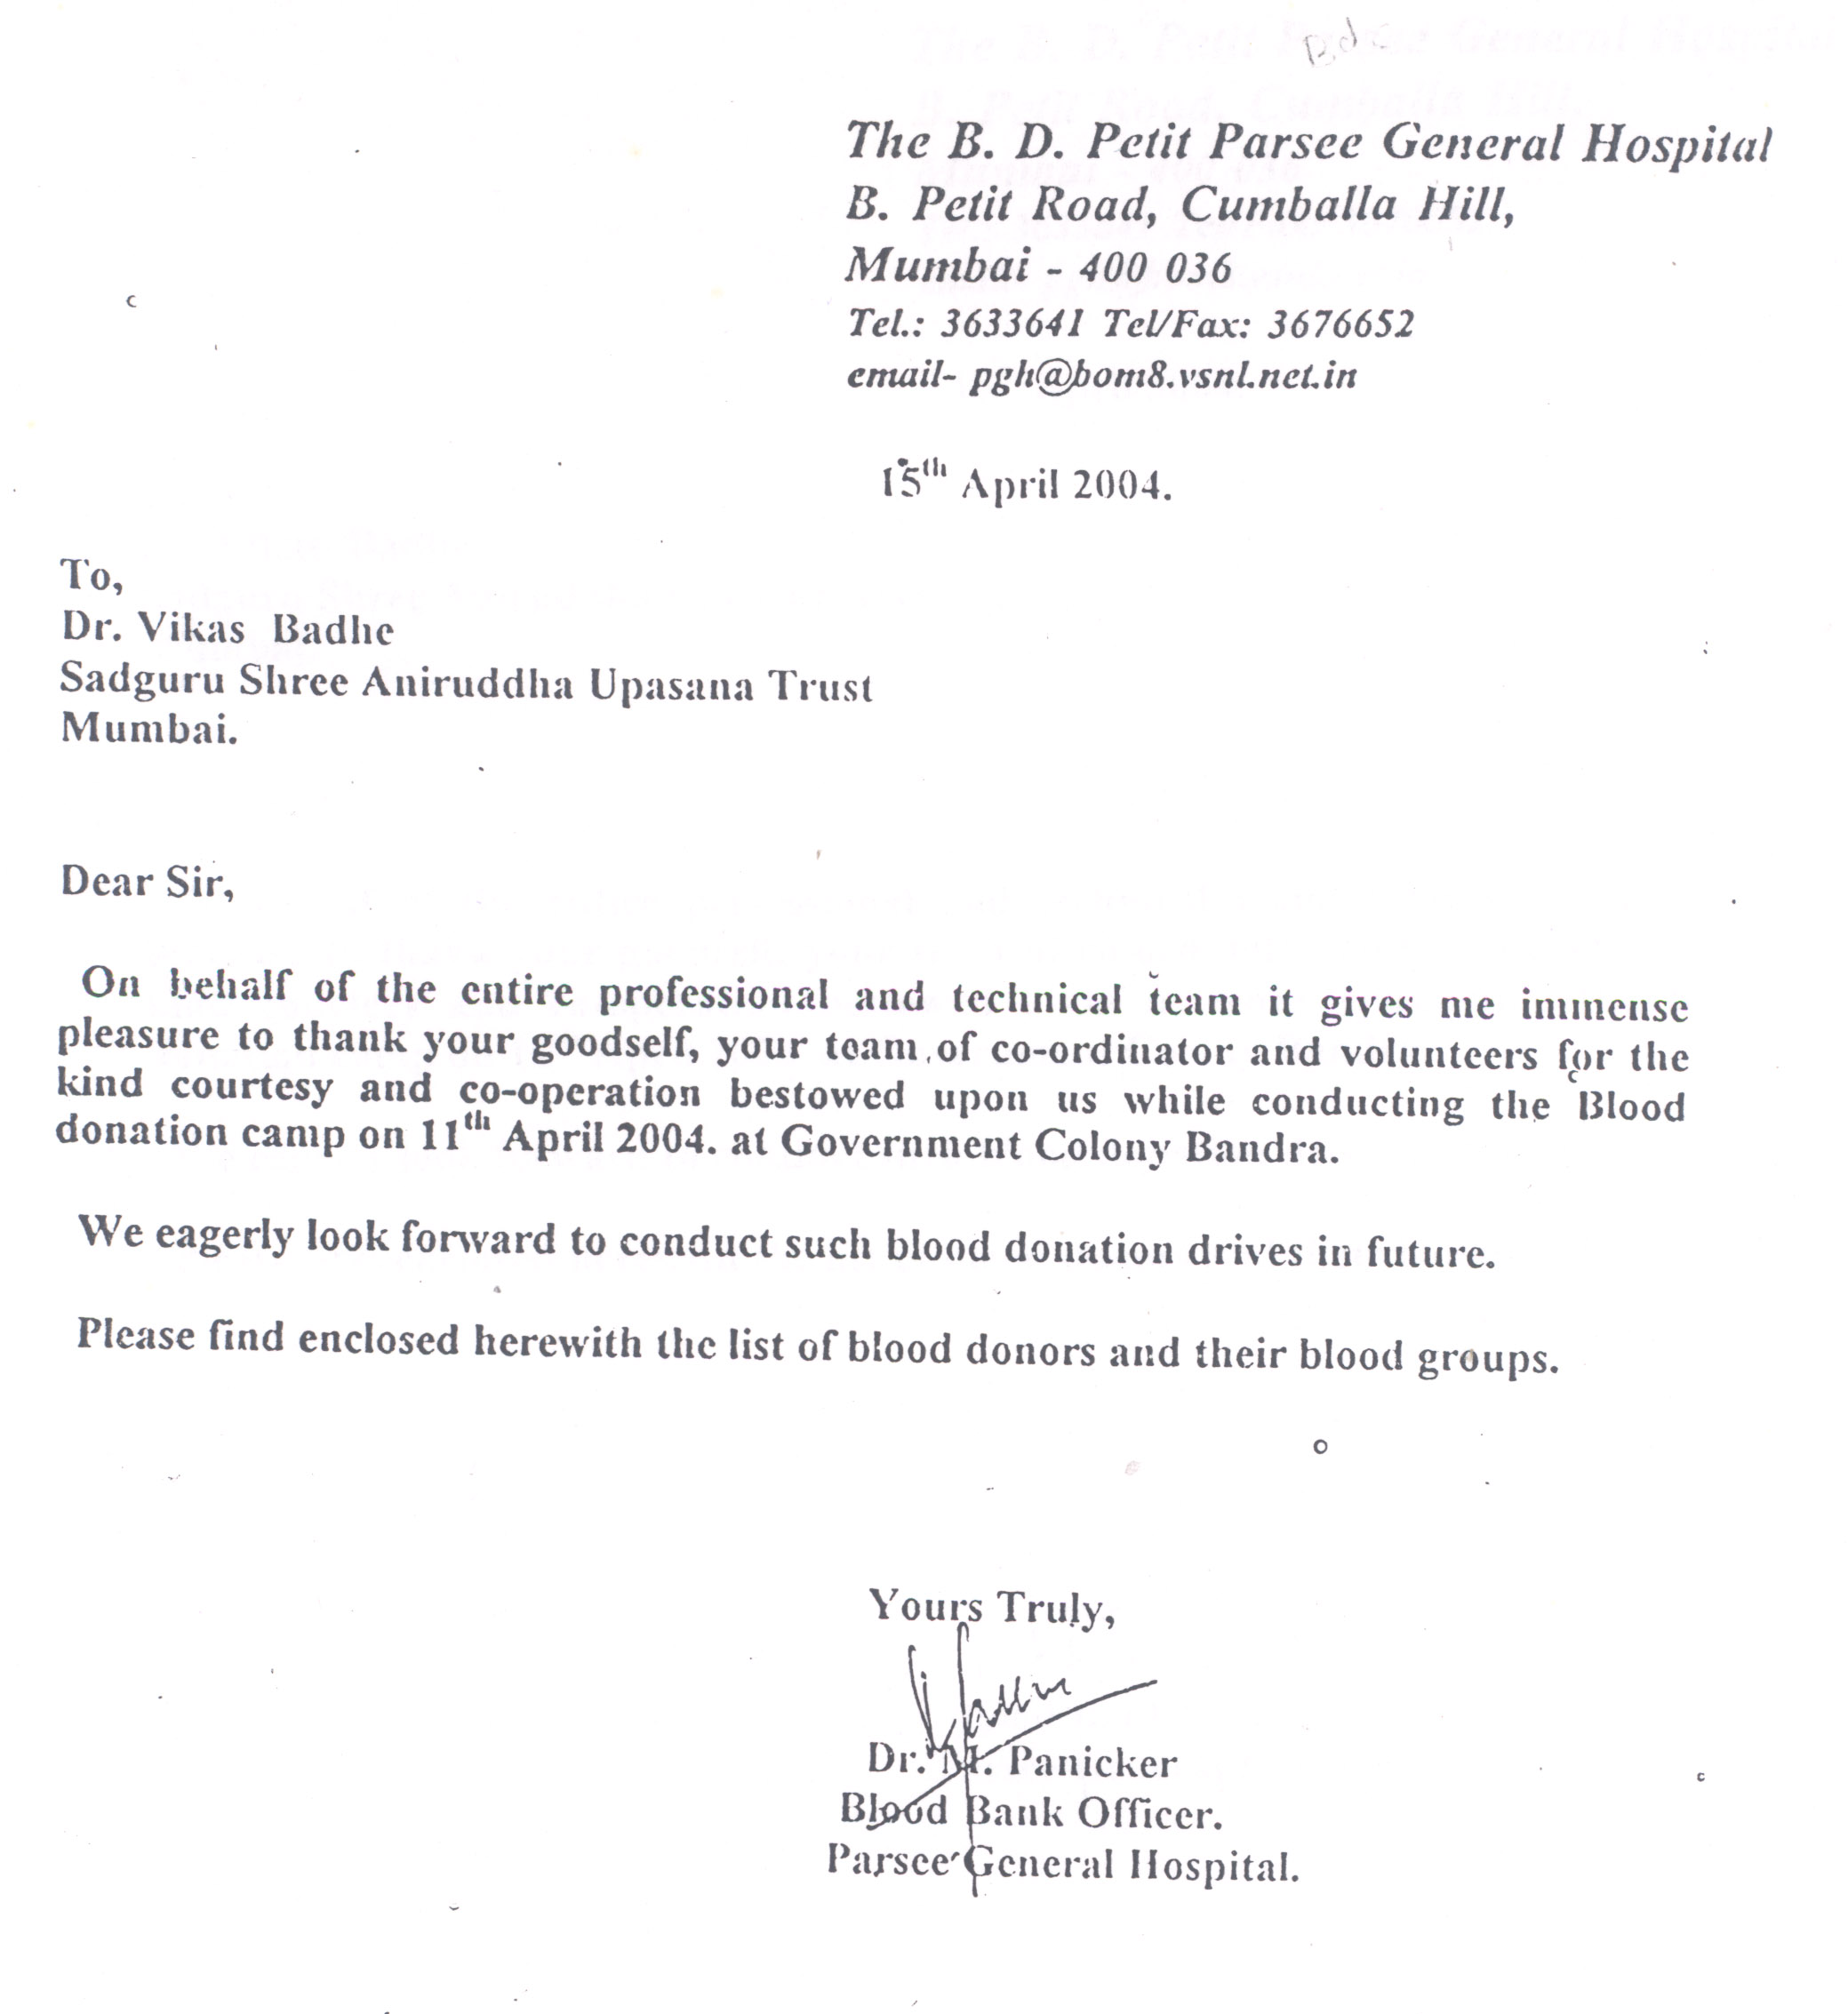 appreciation letter blood donation camps shree aniruddha upasana appreciation letter from petit parsee hospital 2004 for aniruddhafoundation compassion social